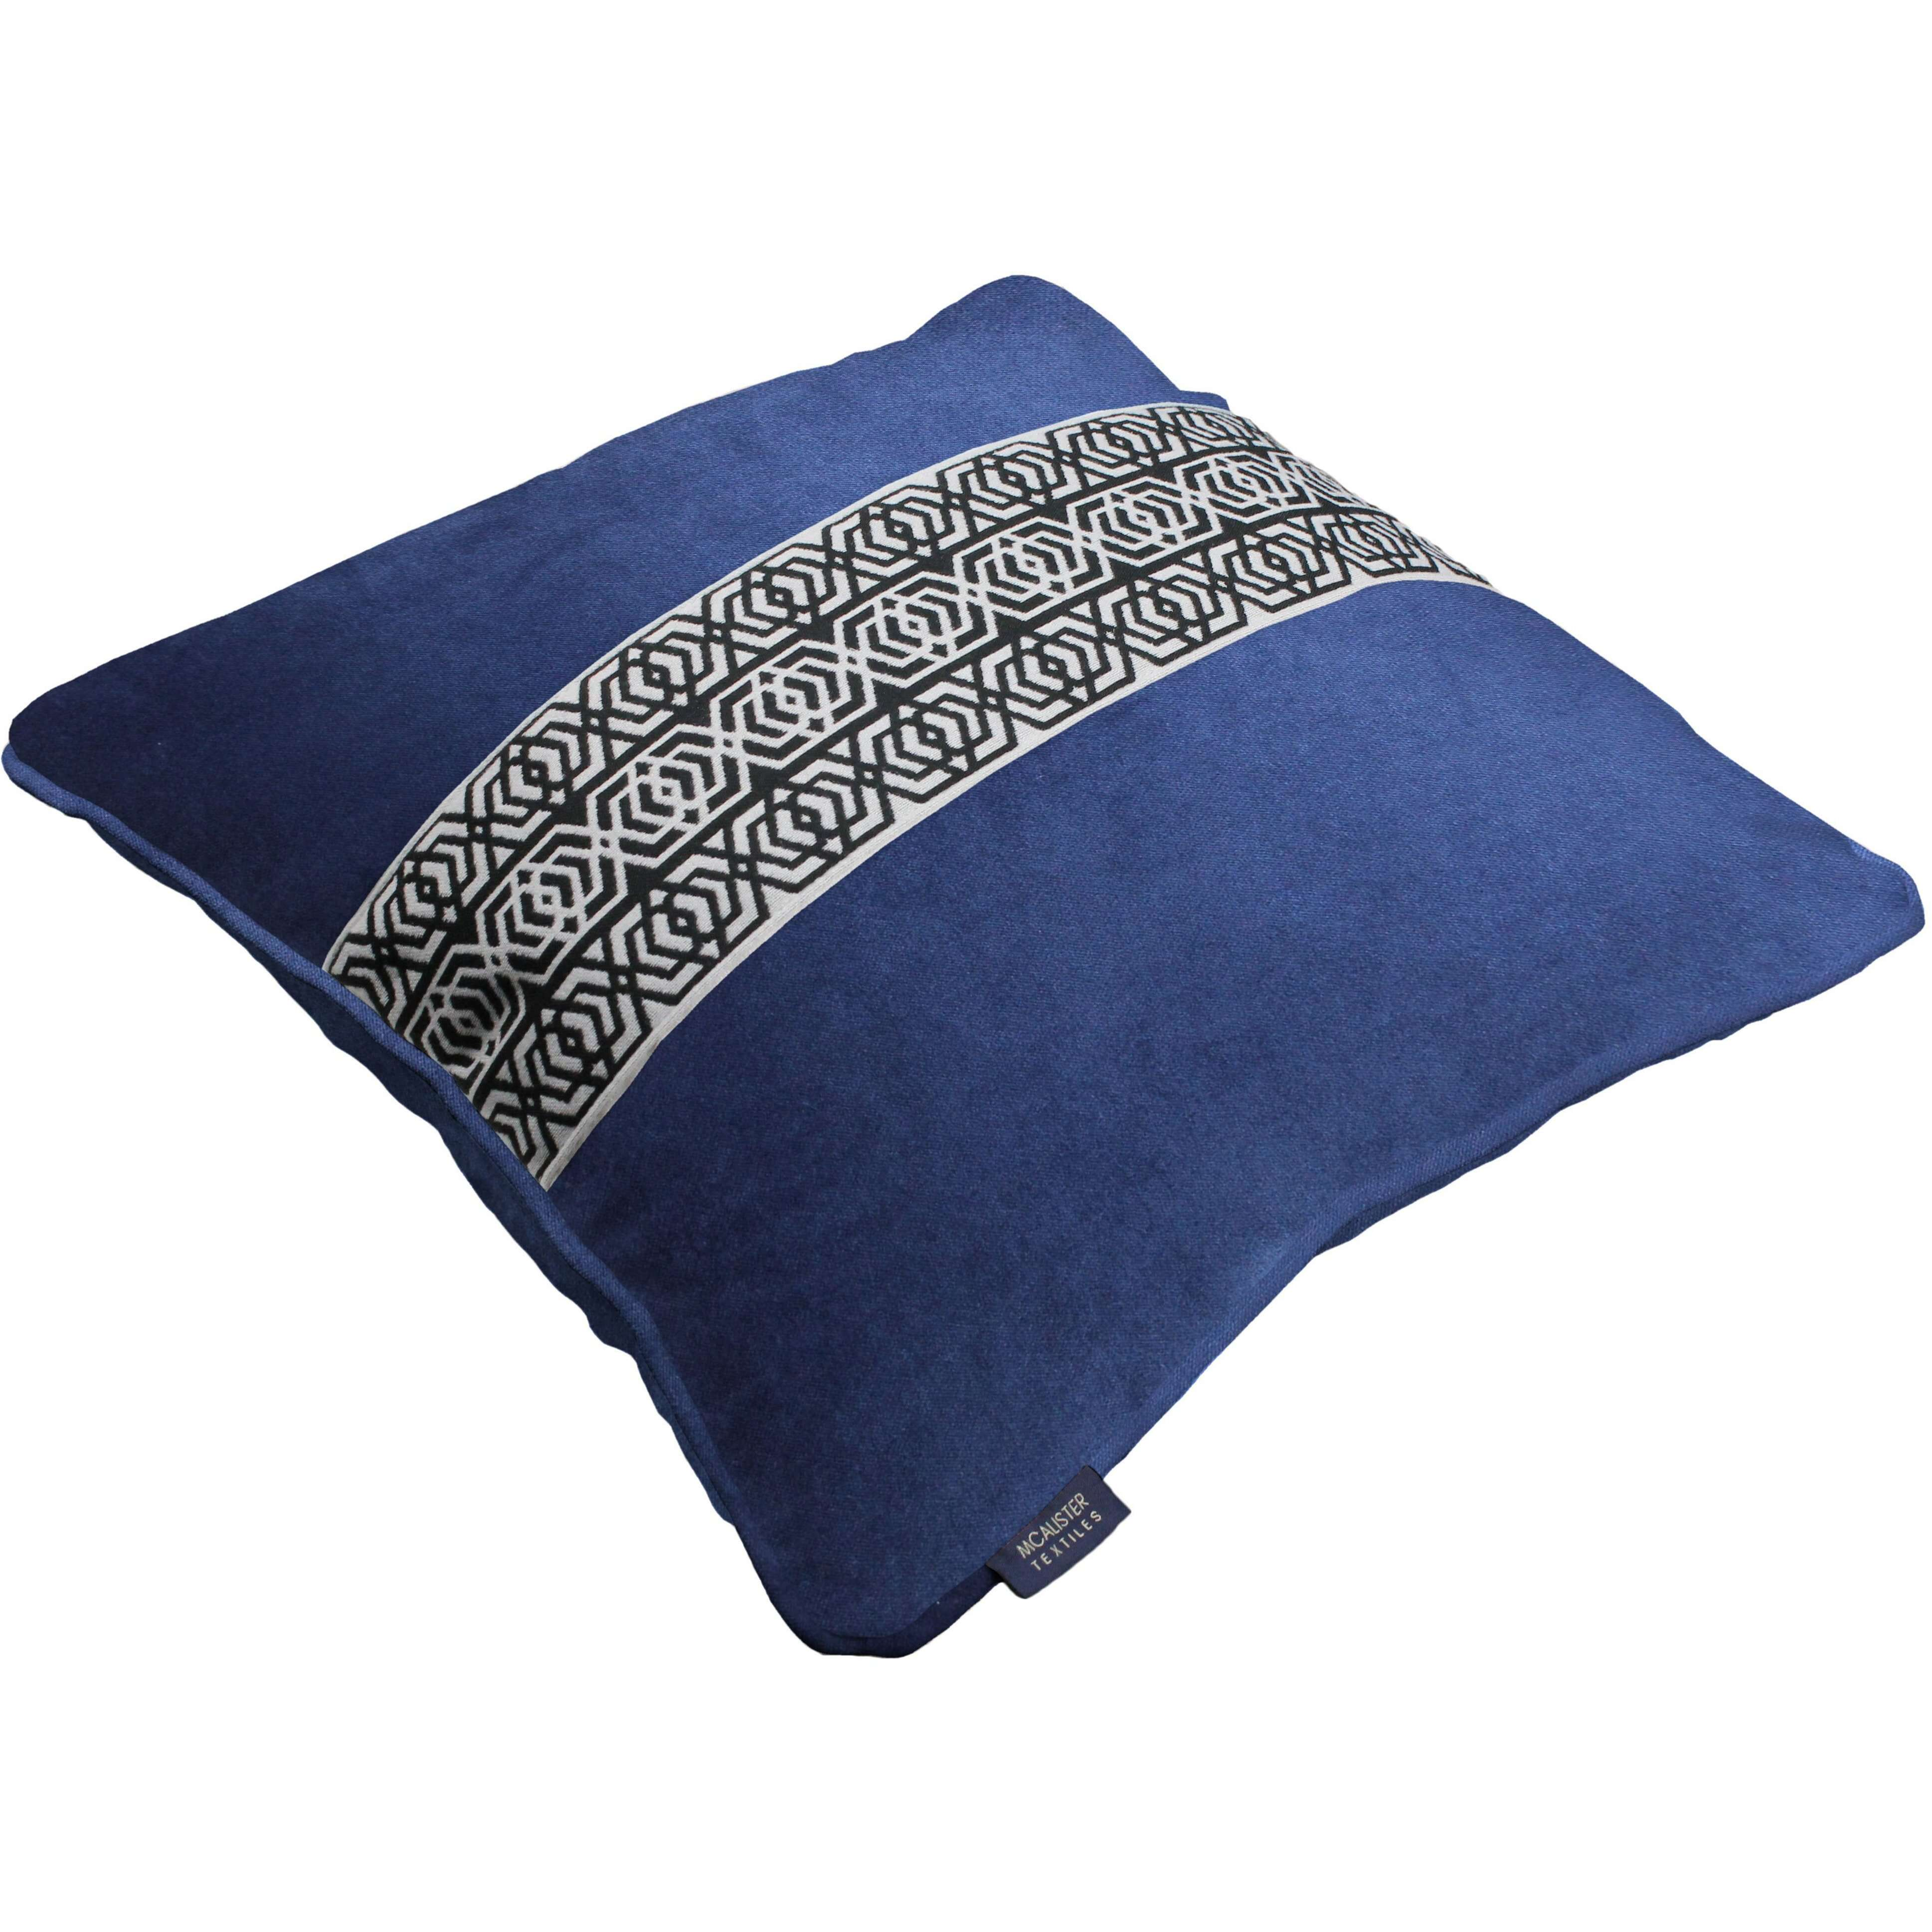 McAlister Textiles Coba Striped Navy Blue Velvet Cushion Cushions and Covers